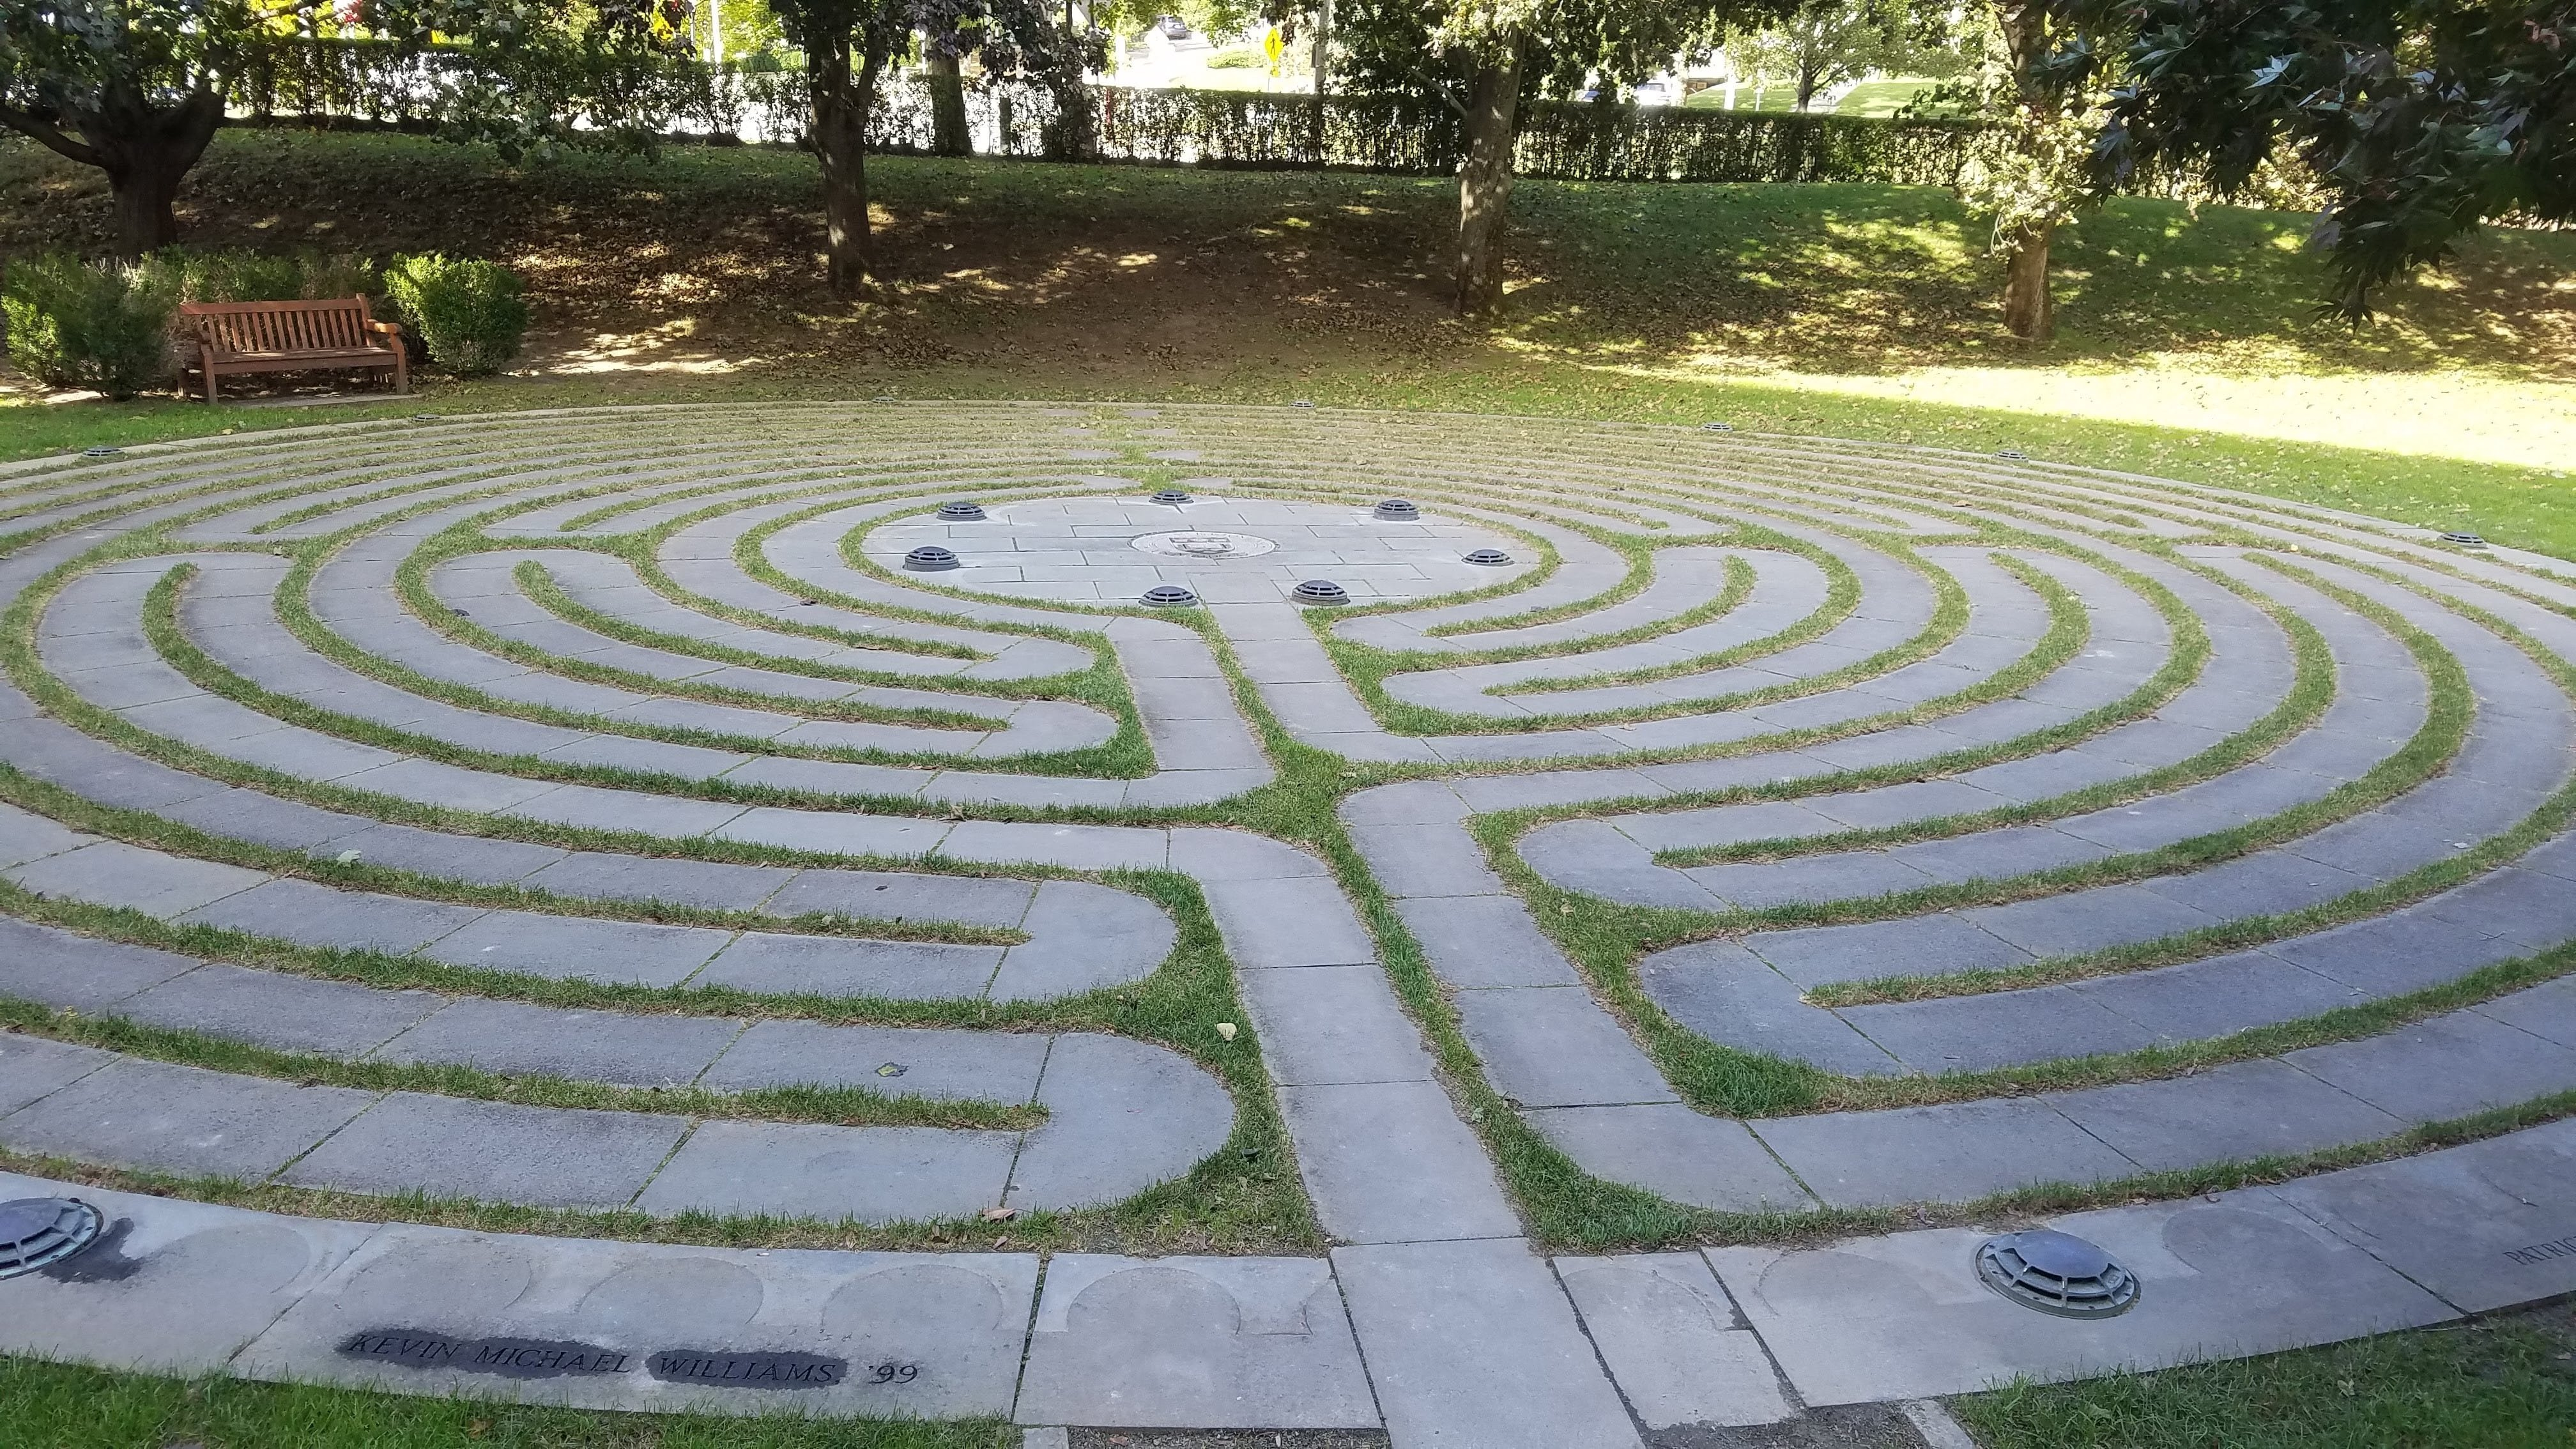 Close up of the labyrinth path